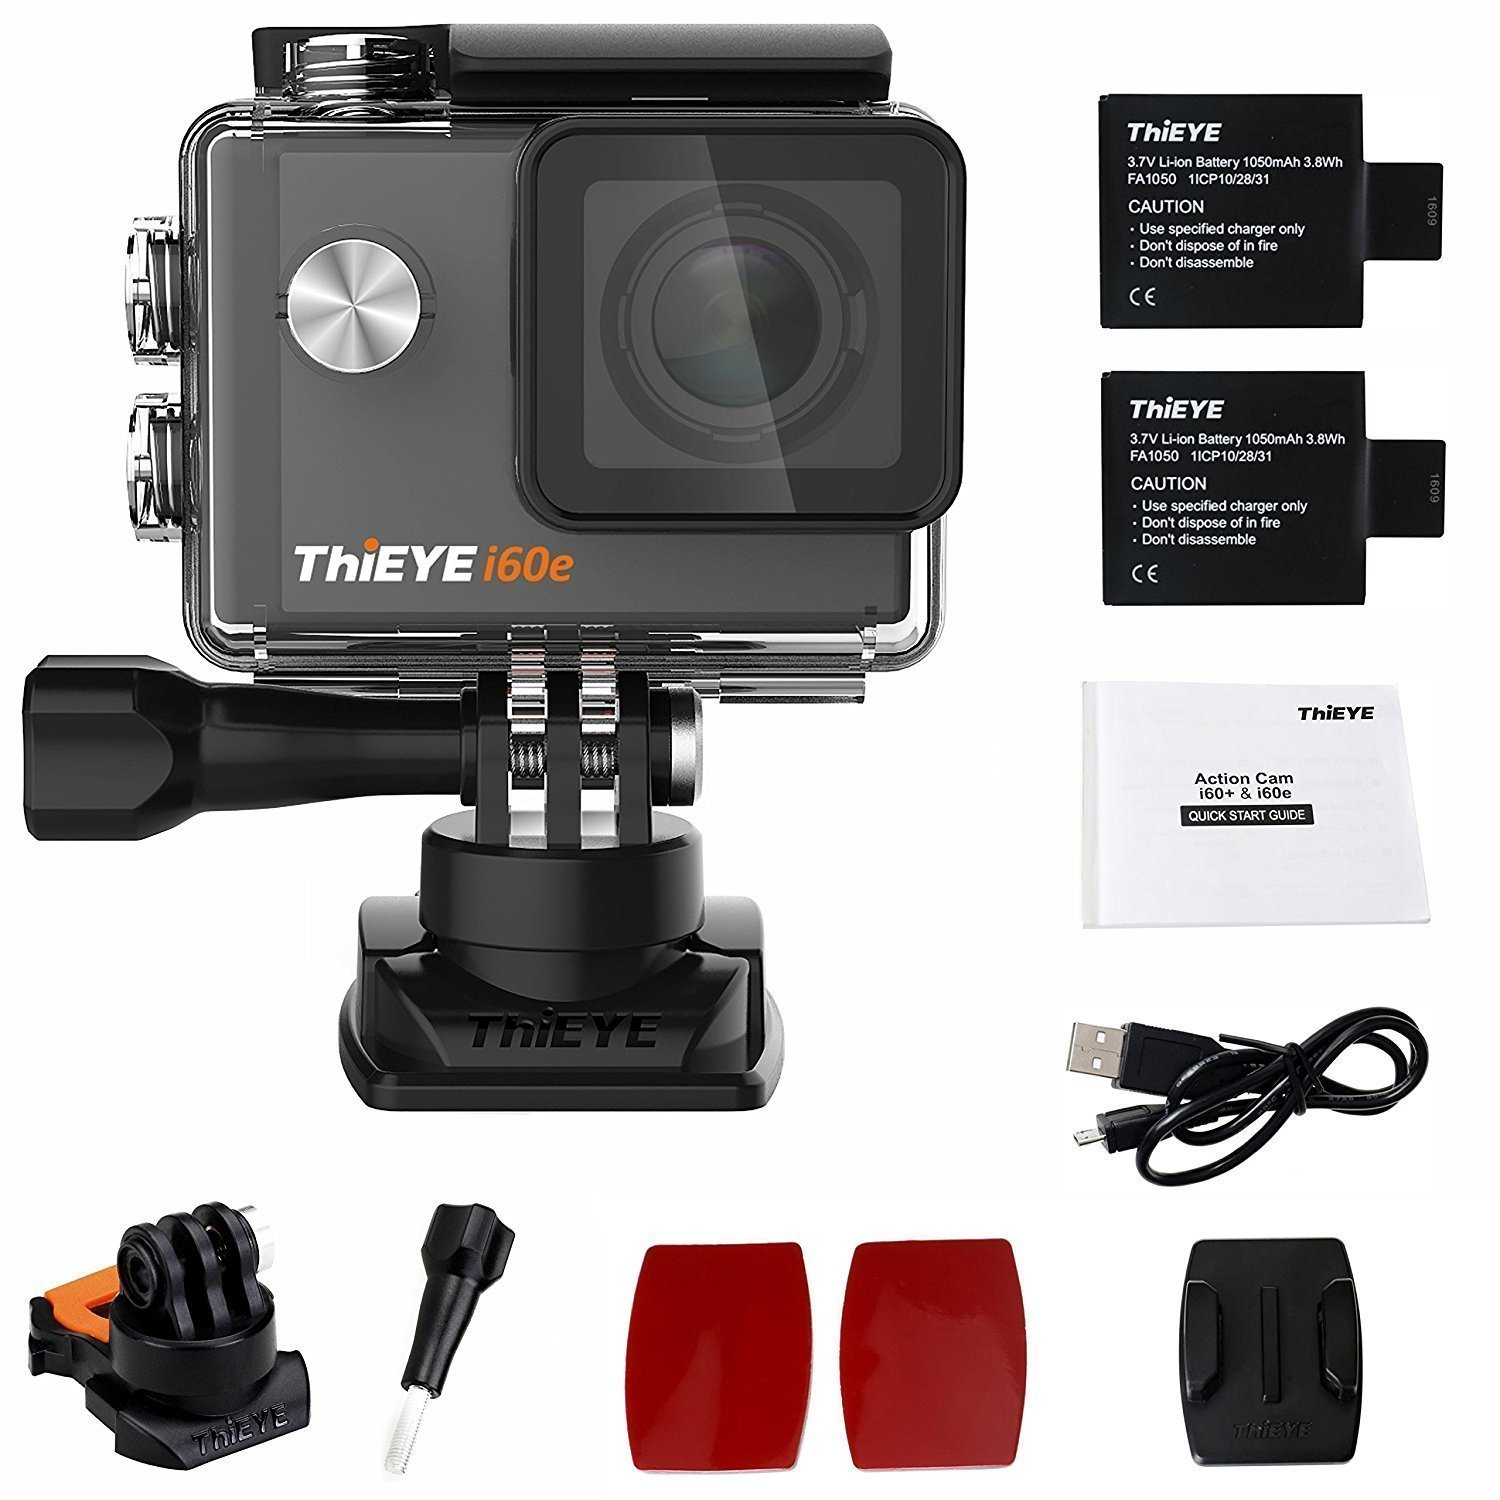 """ThiEYE 4K Action Camera Wifi Waterproof Sport Video Camera 12MP Full HD 2"""" Screen with Multiple Modes, 170 Wide Angle, 197FT Waterproof, App Control and Full Accessories (i60e)"""